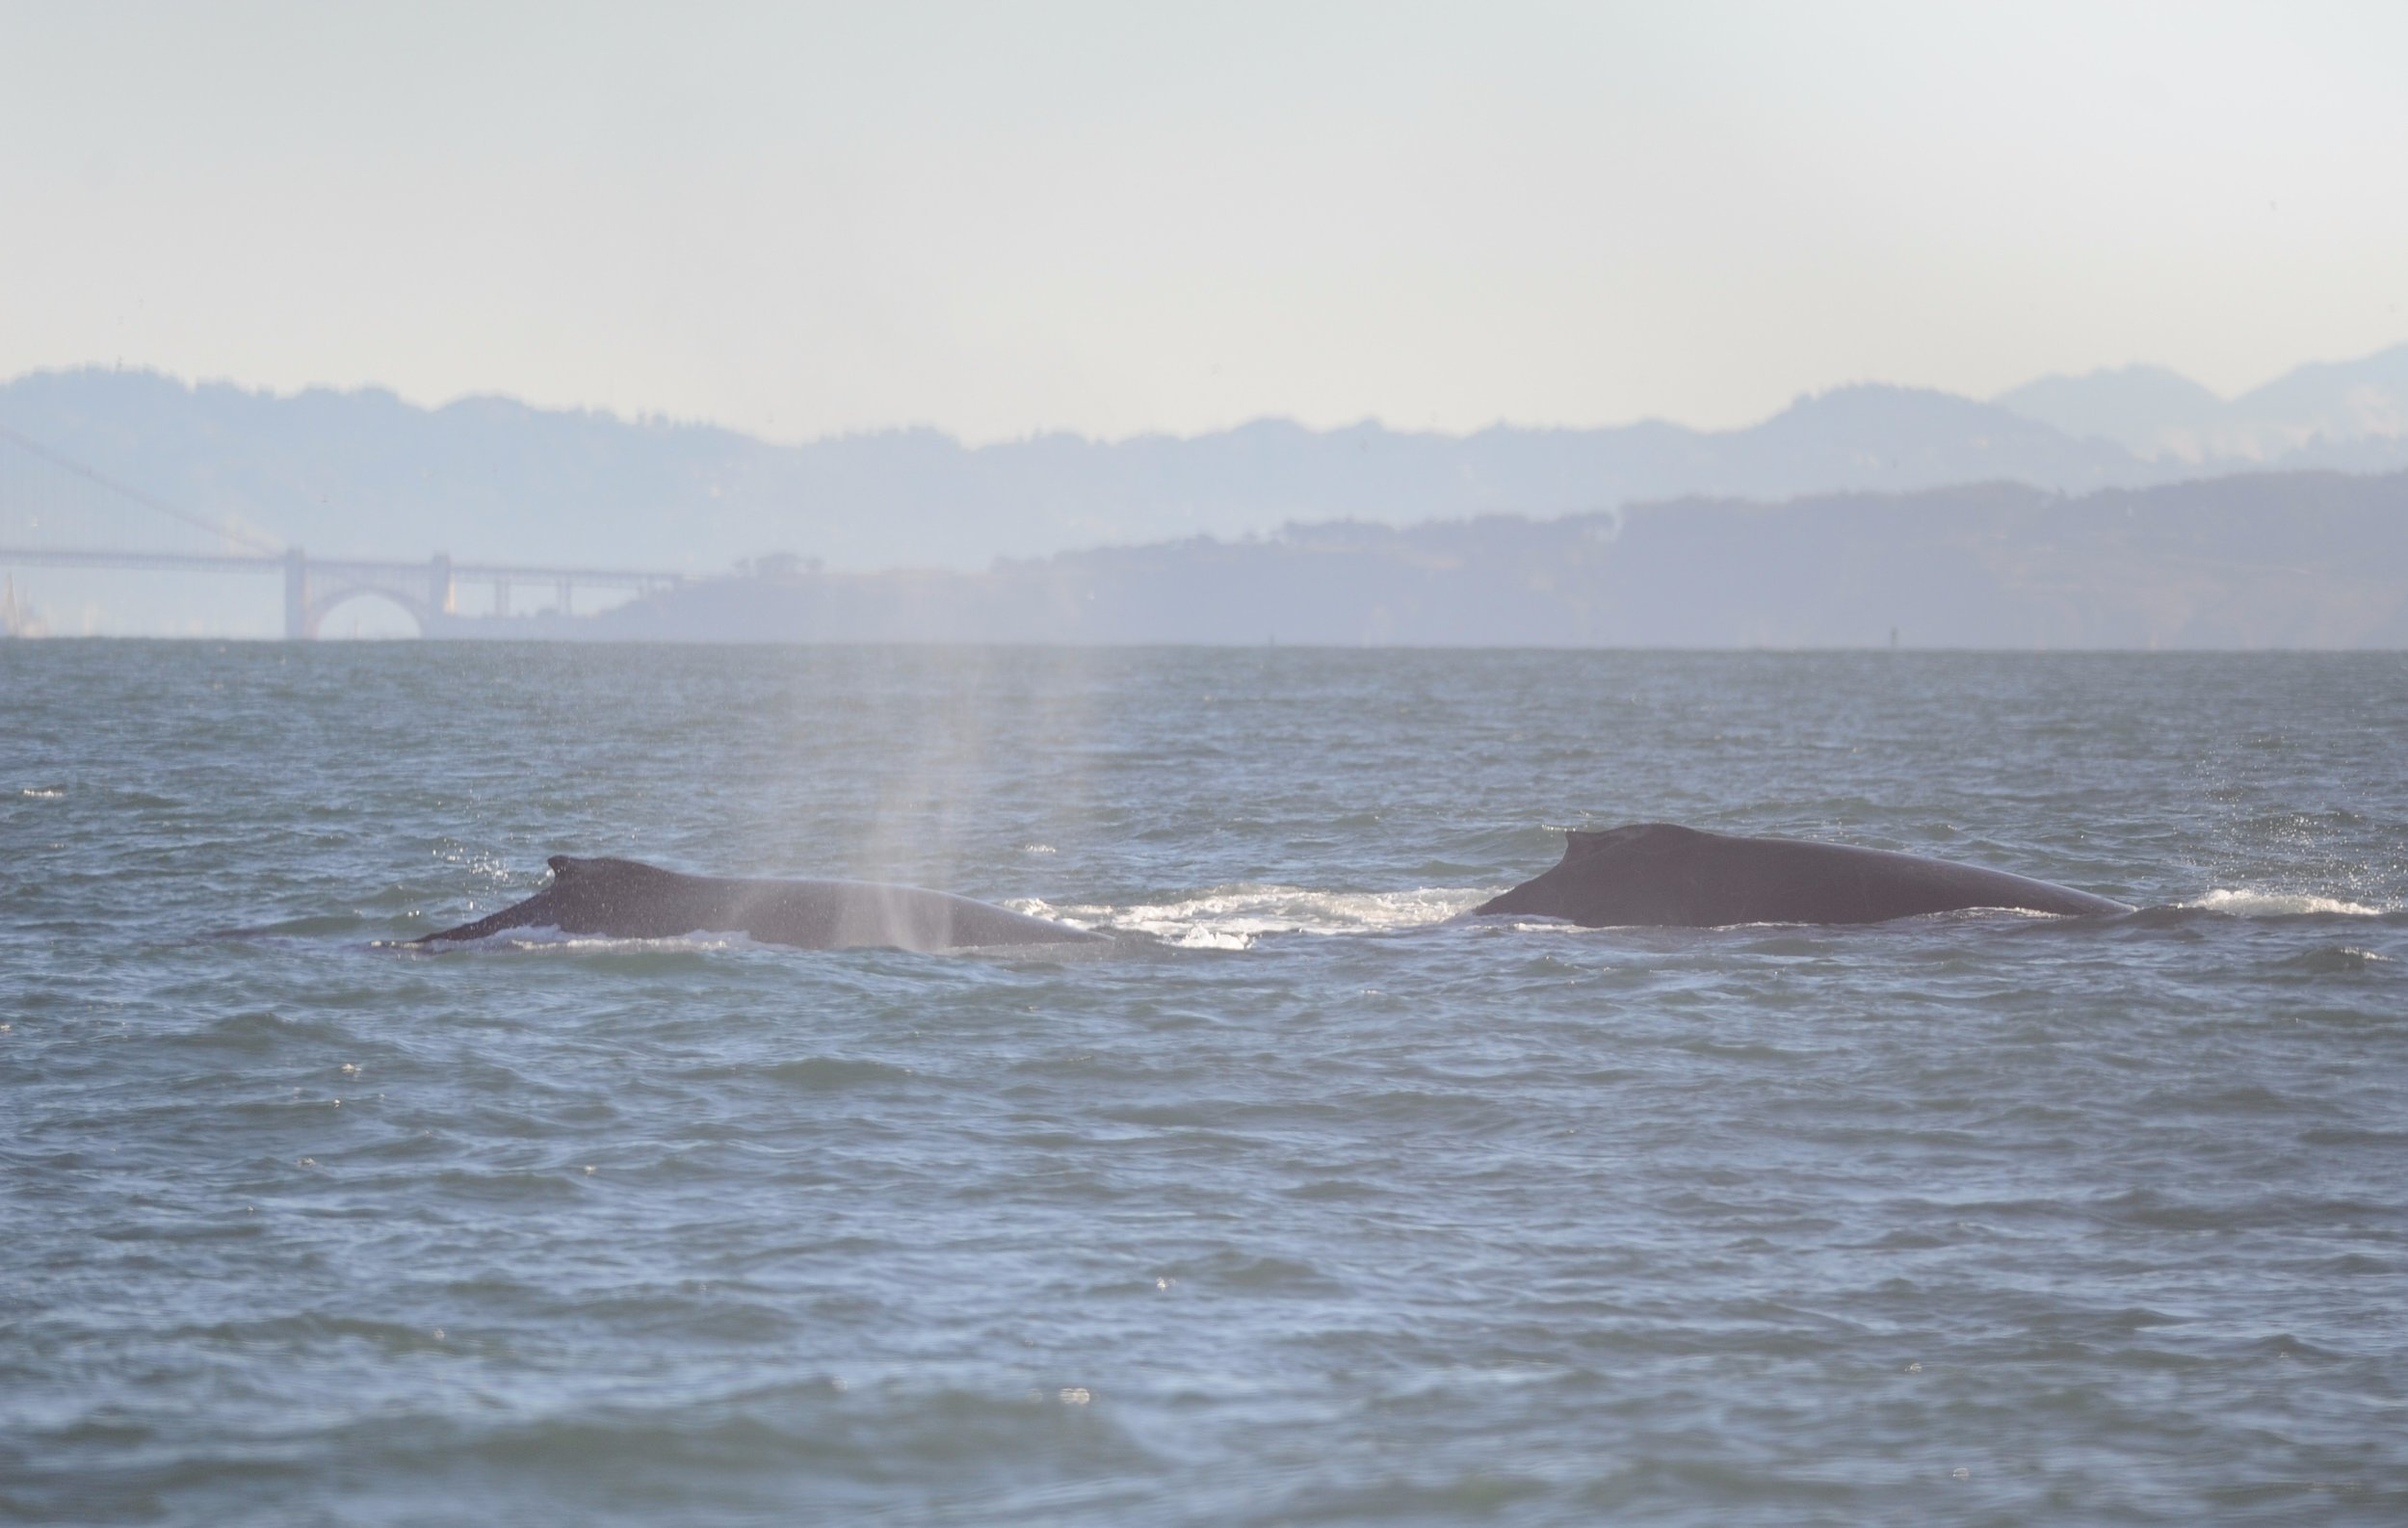 Humpbacks with the Golden Gate Bridge in the background.